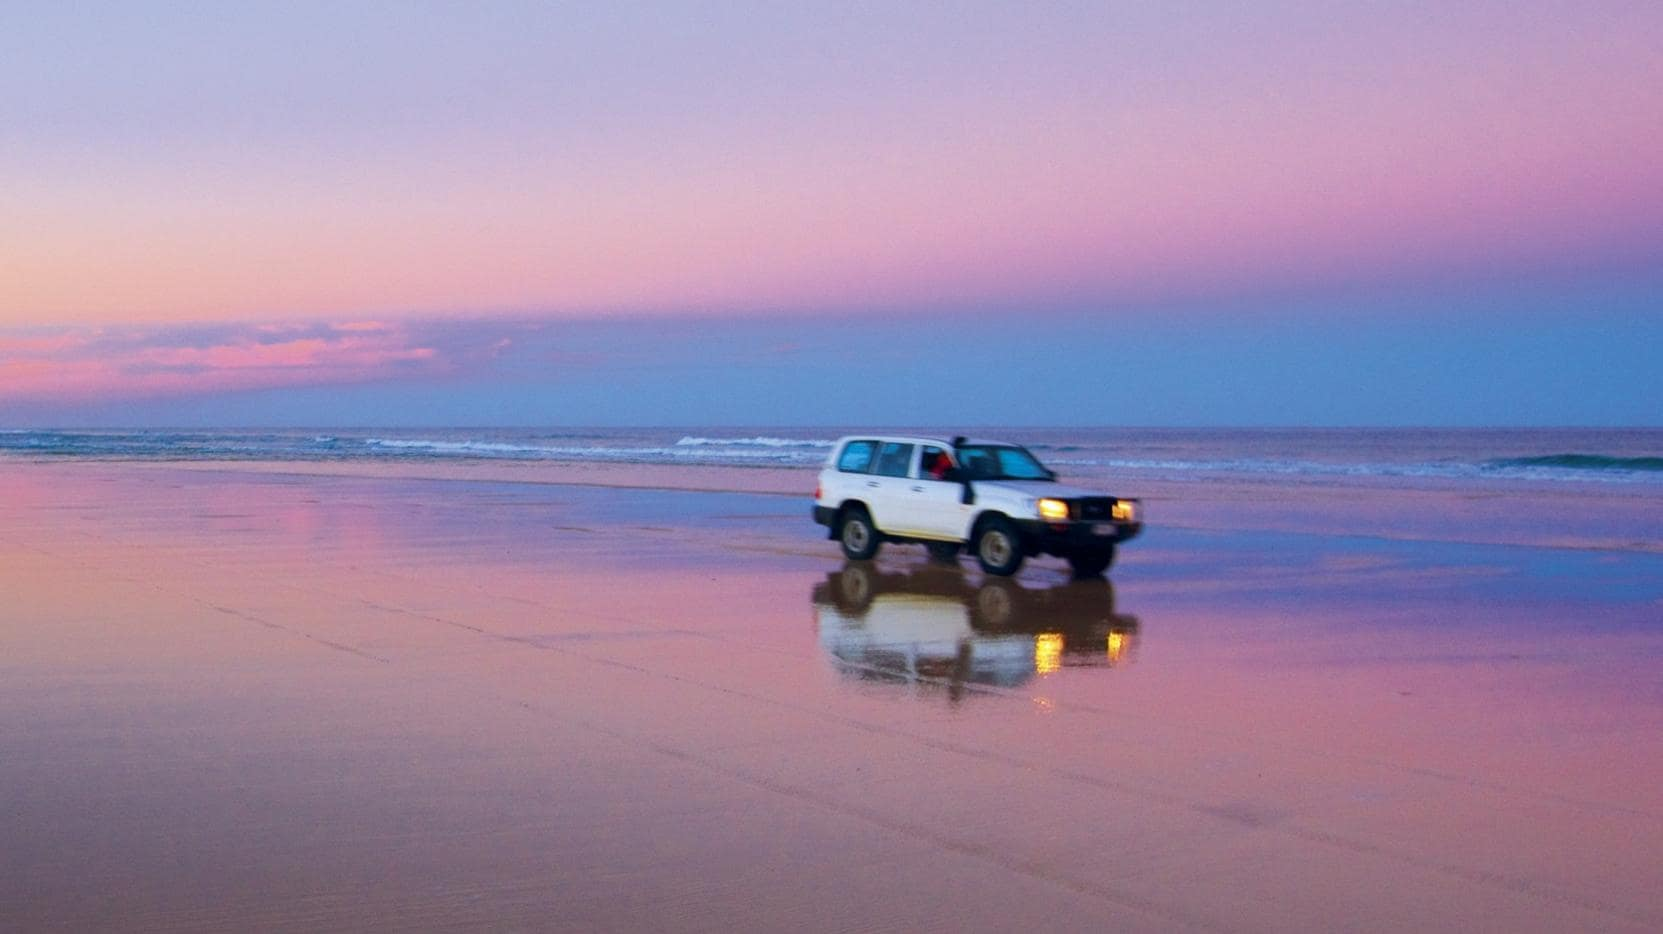 Seventy Five Mile Beach, Fraser Island, QLD © Tourism and Events Queensland/Darren Jew